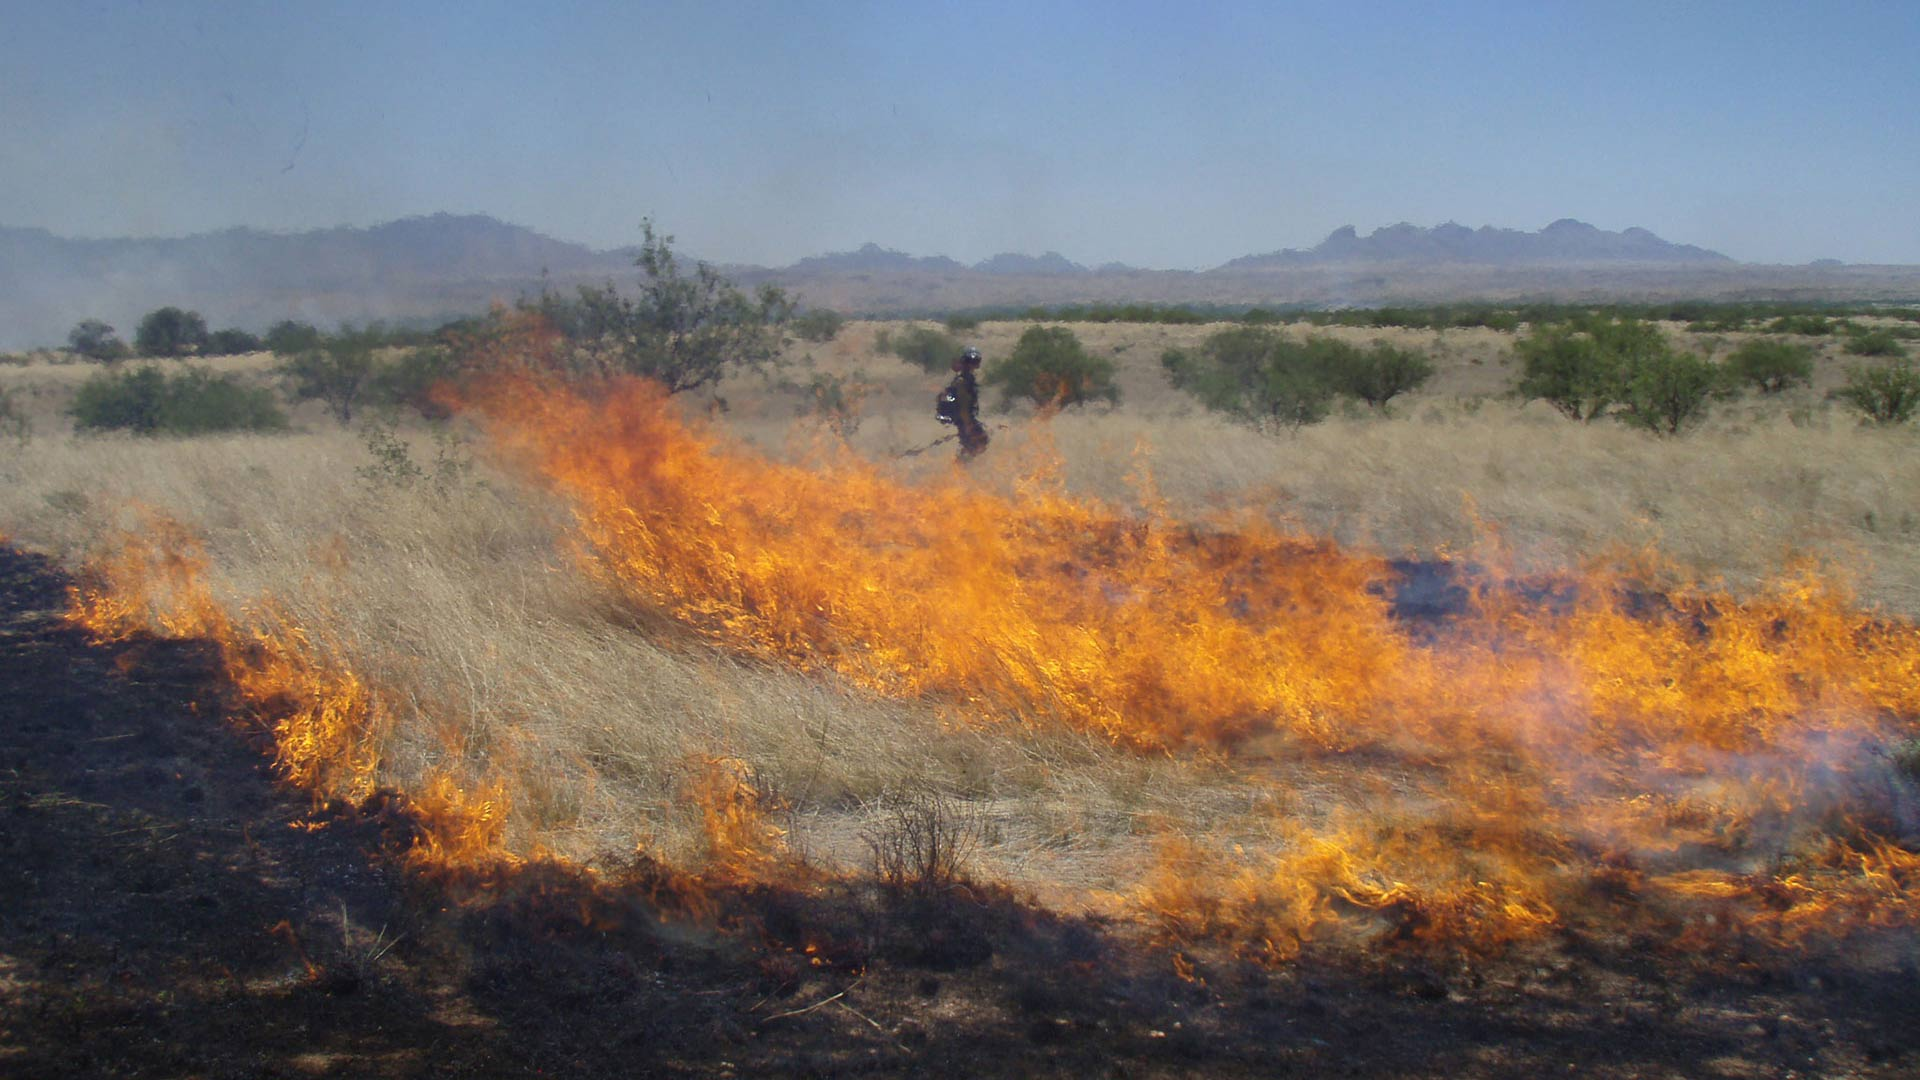 The Bureau of Land Management used prescribed burns across many of its properties for habitat improvement and to reduce the risk of severe wildfires.